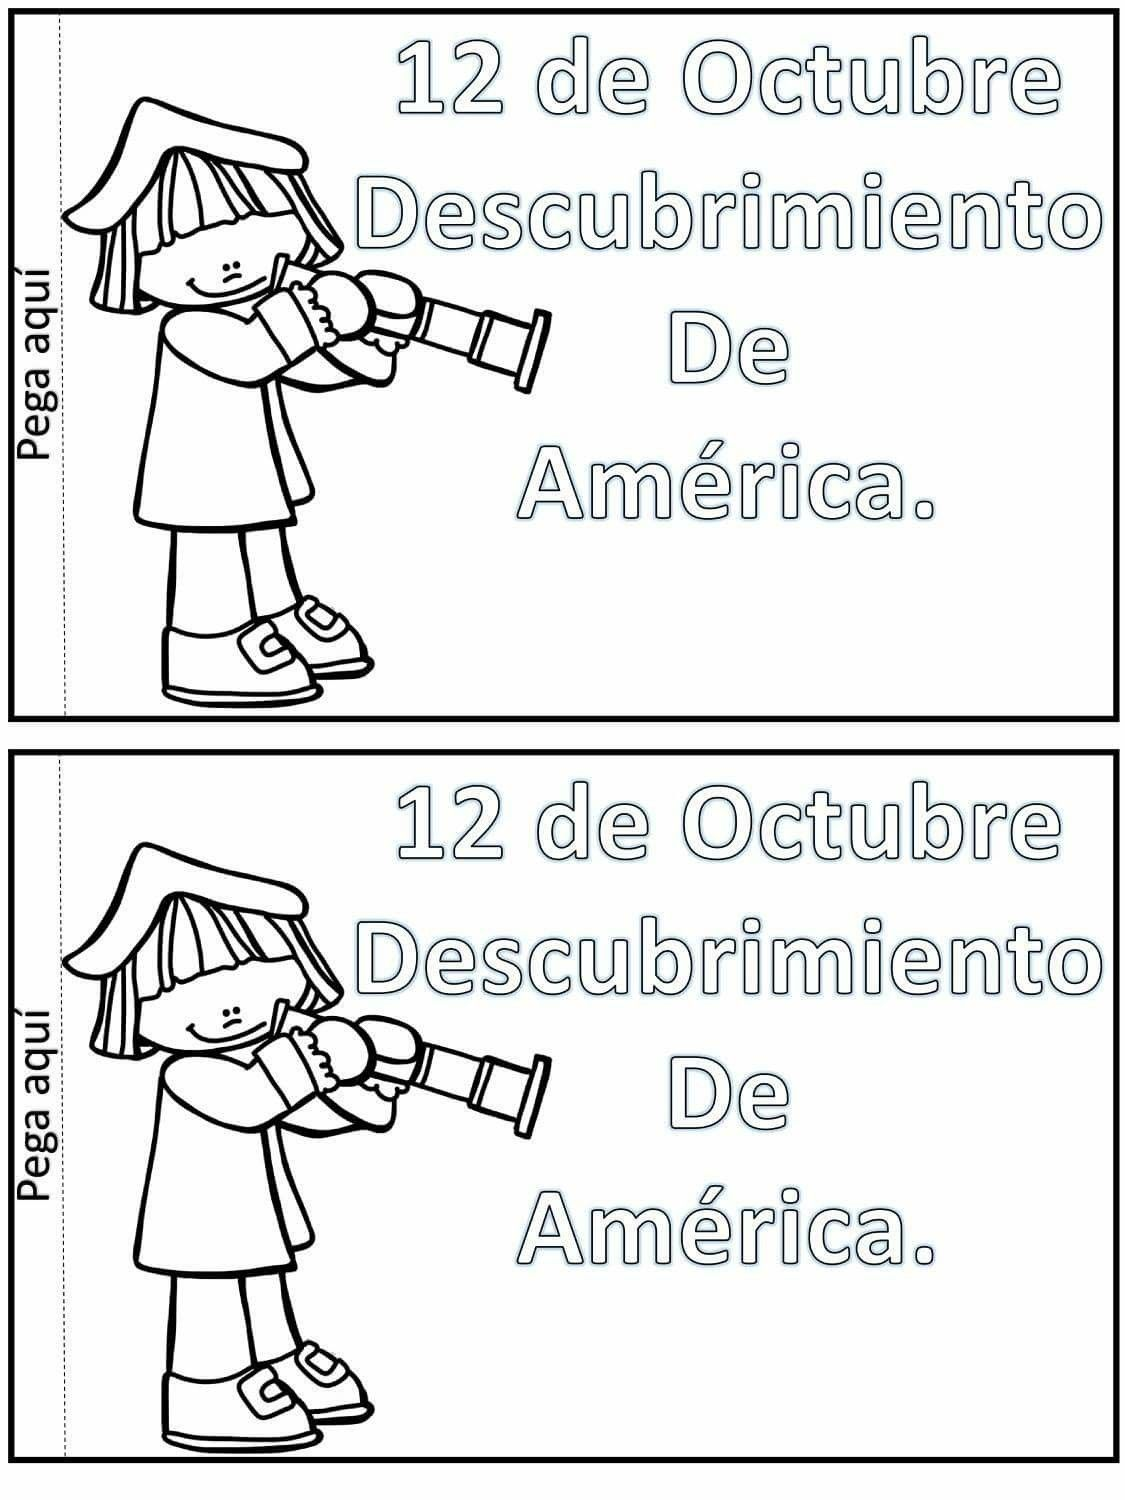 Christopher Columbus Day Worksheet For Kindergarten